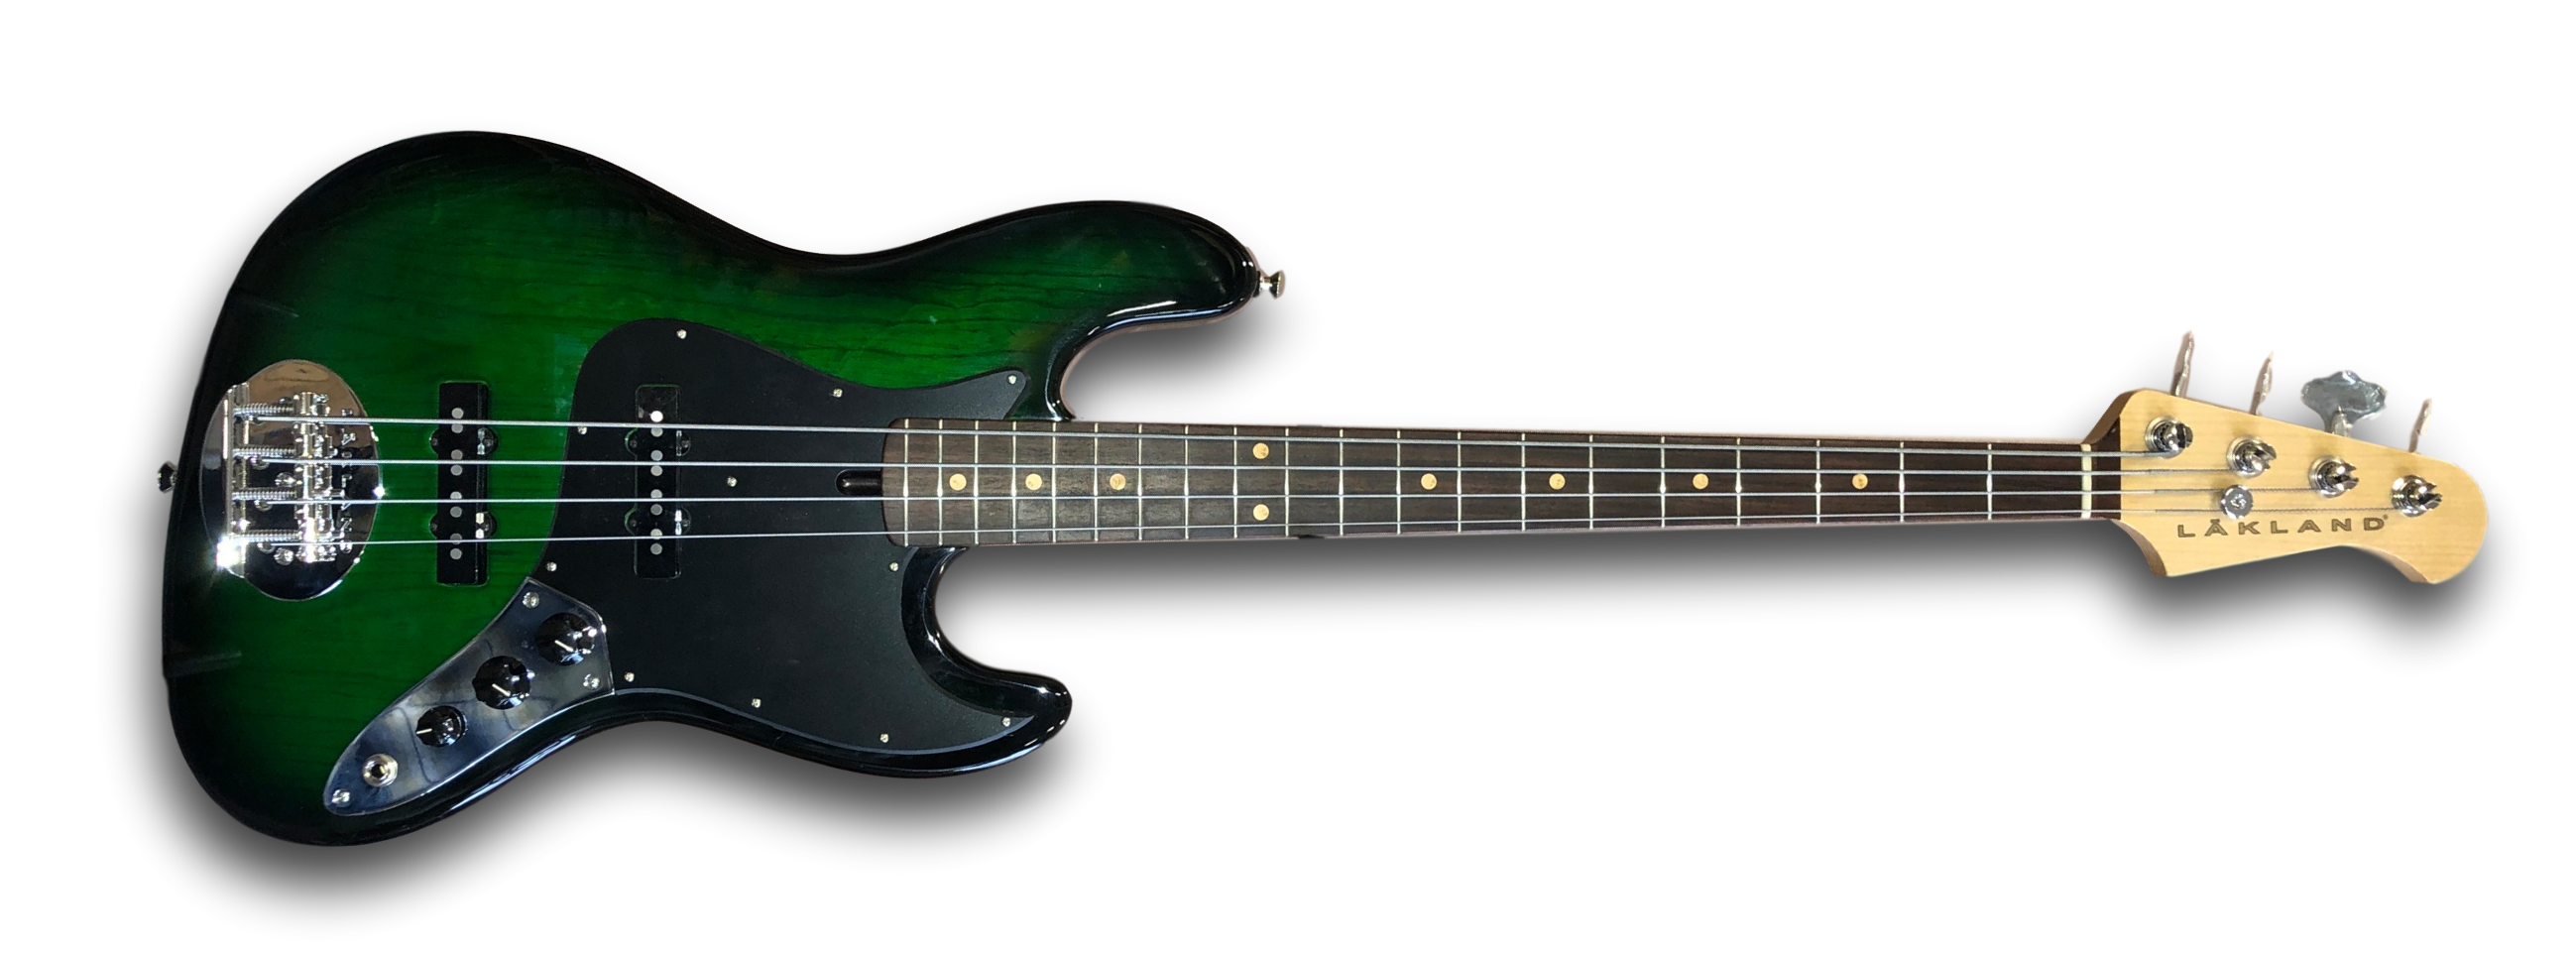 44-60 Green Black Burst_clipped_rev_1